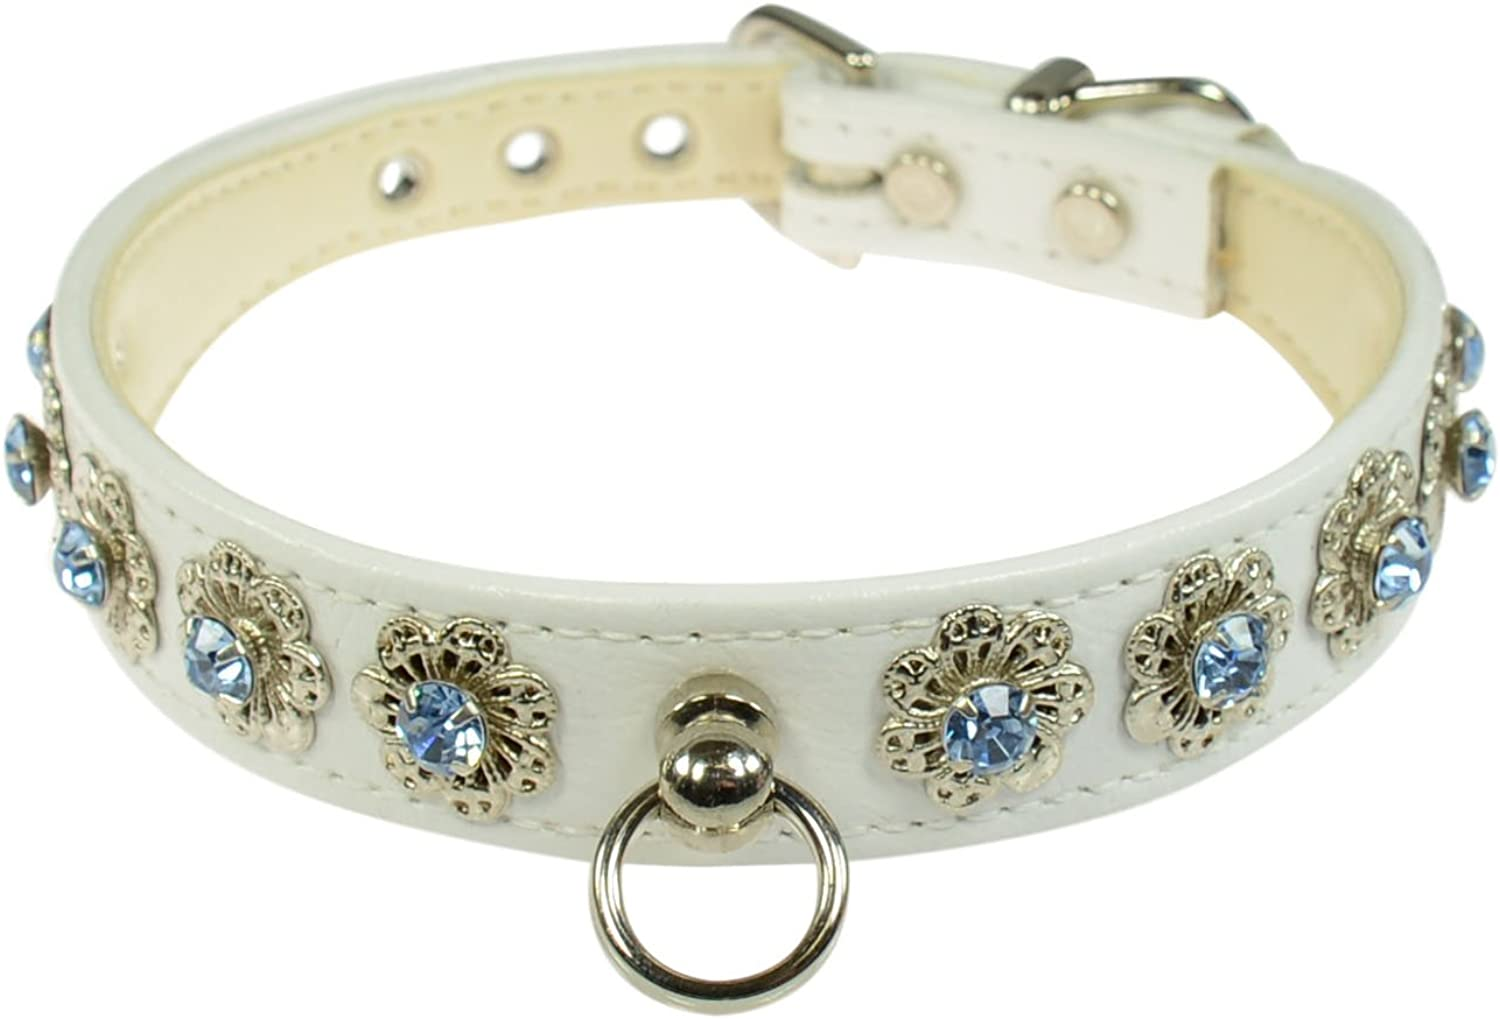 Evans Collars 3 4  Shaped Collar with Starlight Pattern, Size 12, Vinyl, White